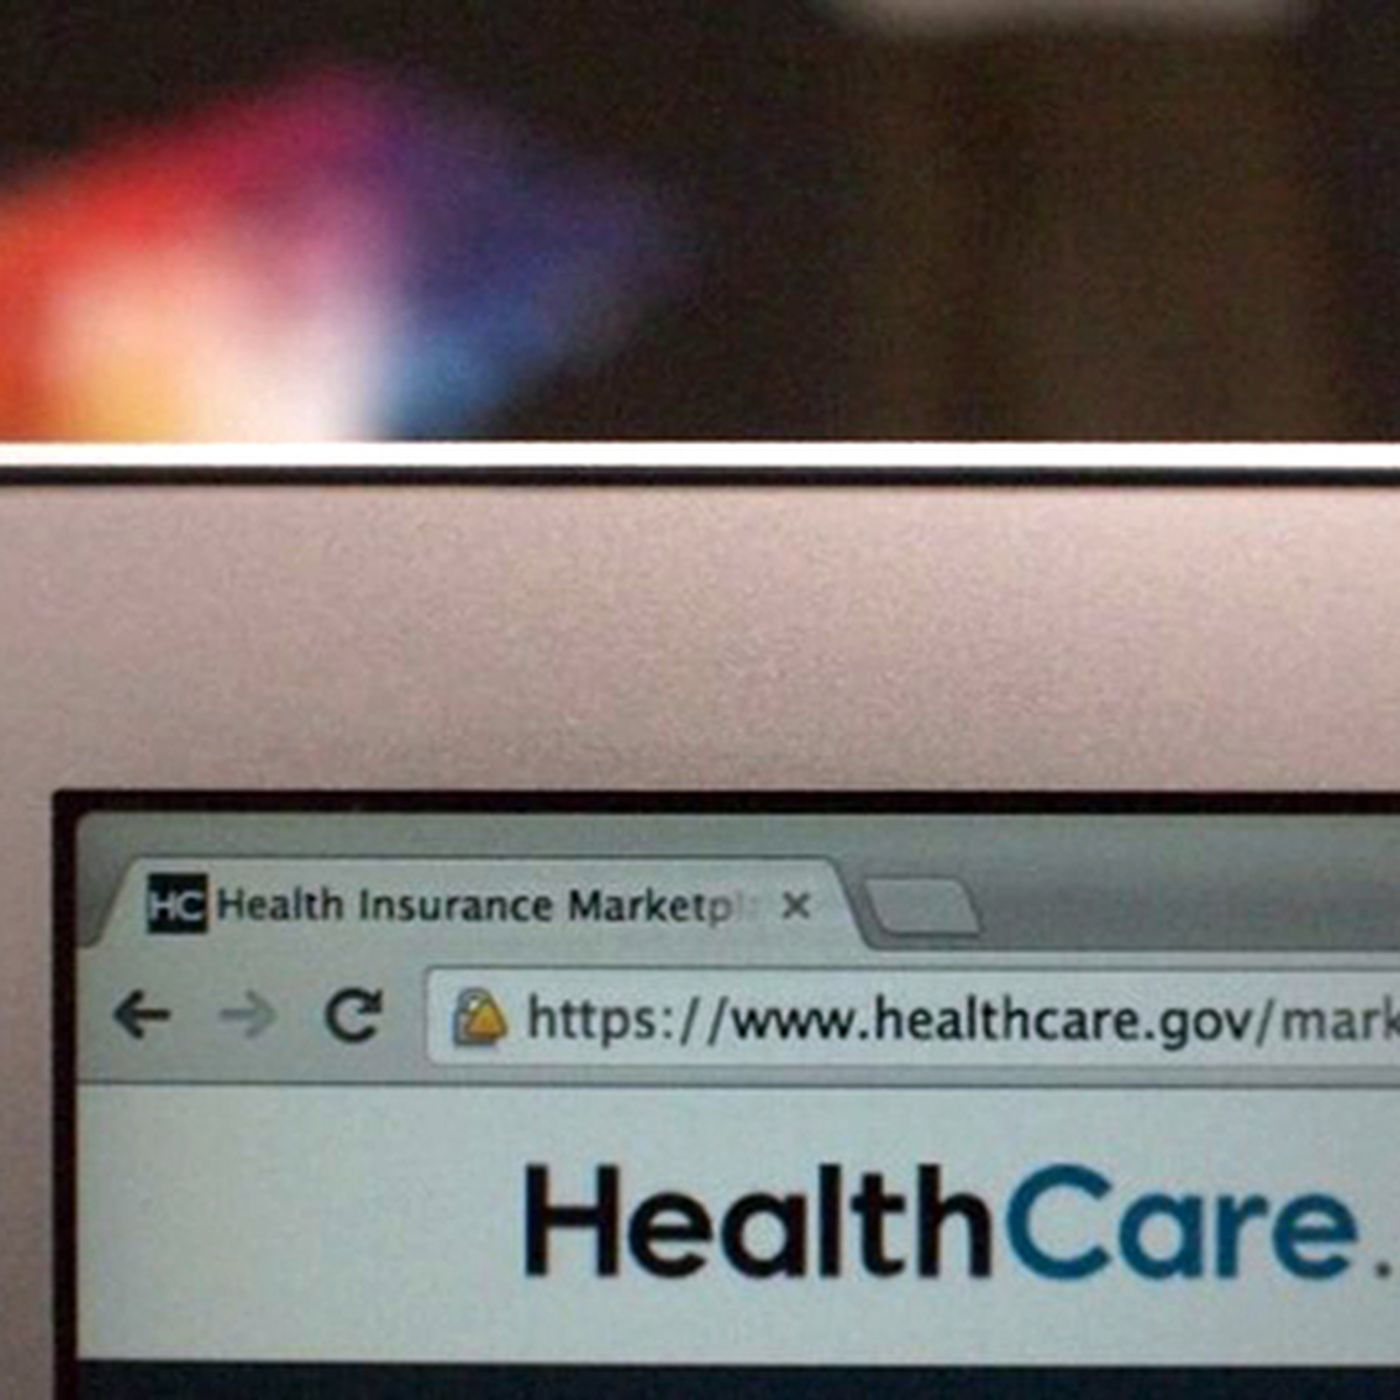 theverge.com - Andrew Liptak - Hackers accessed records of 75,000 people in government health insurance system breach